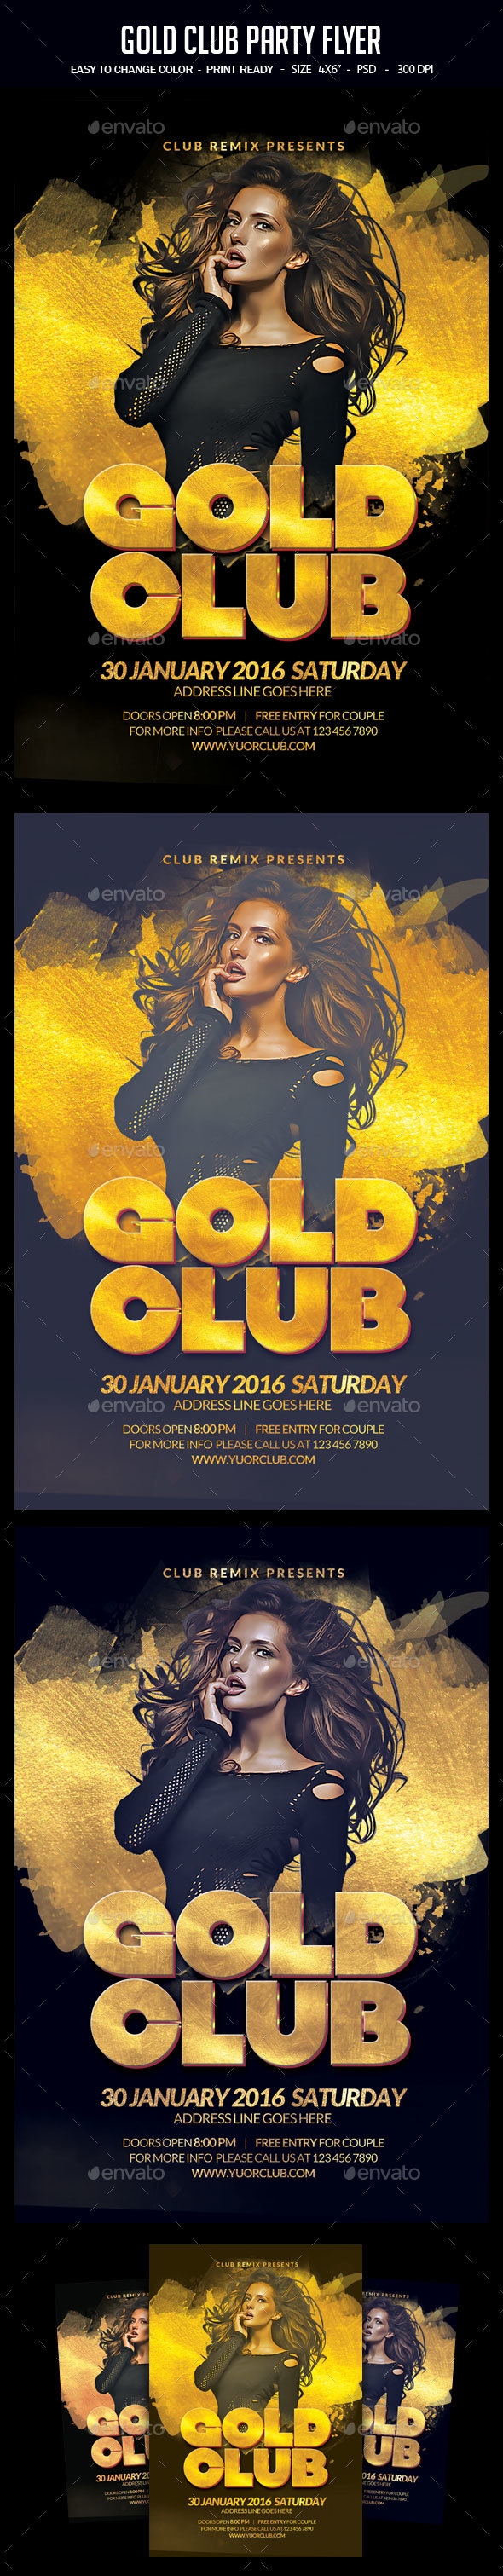 Gold Club Party Flyer - Clubs & Parties Events